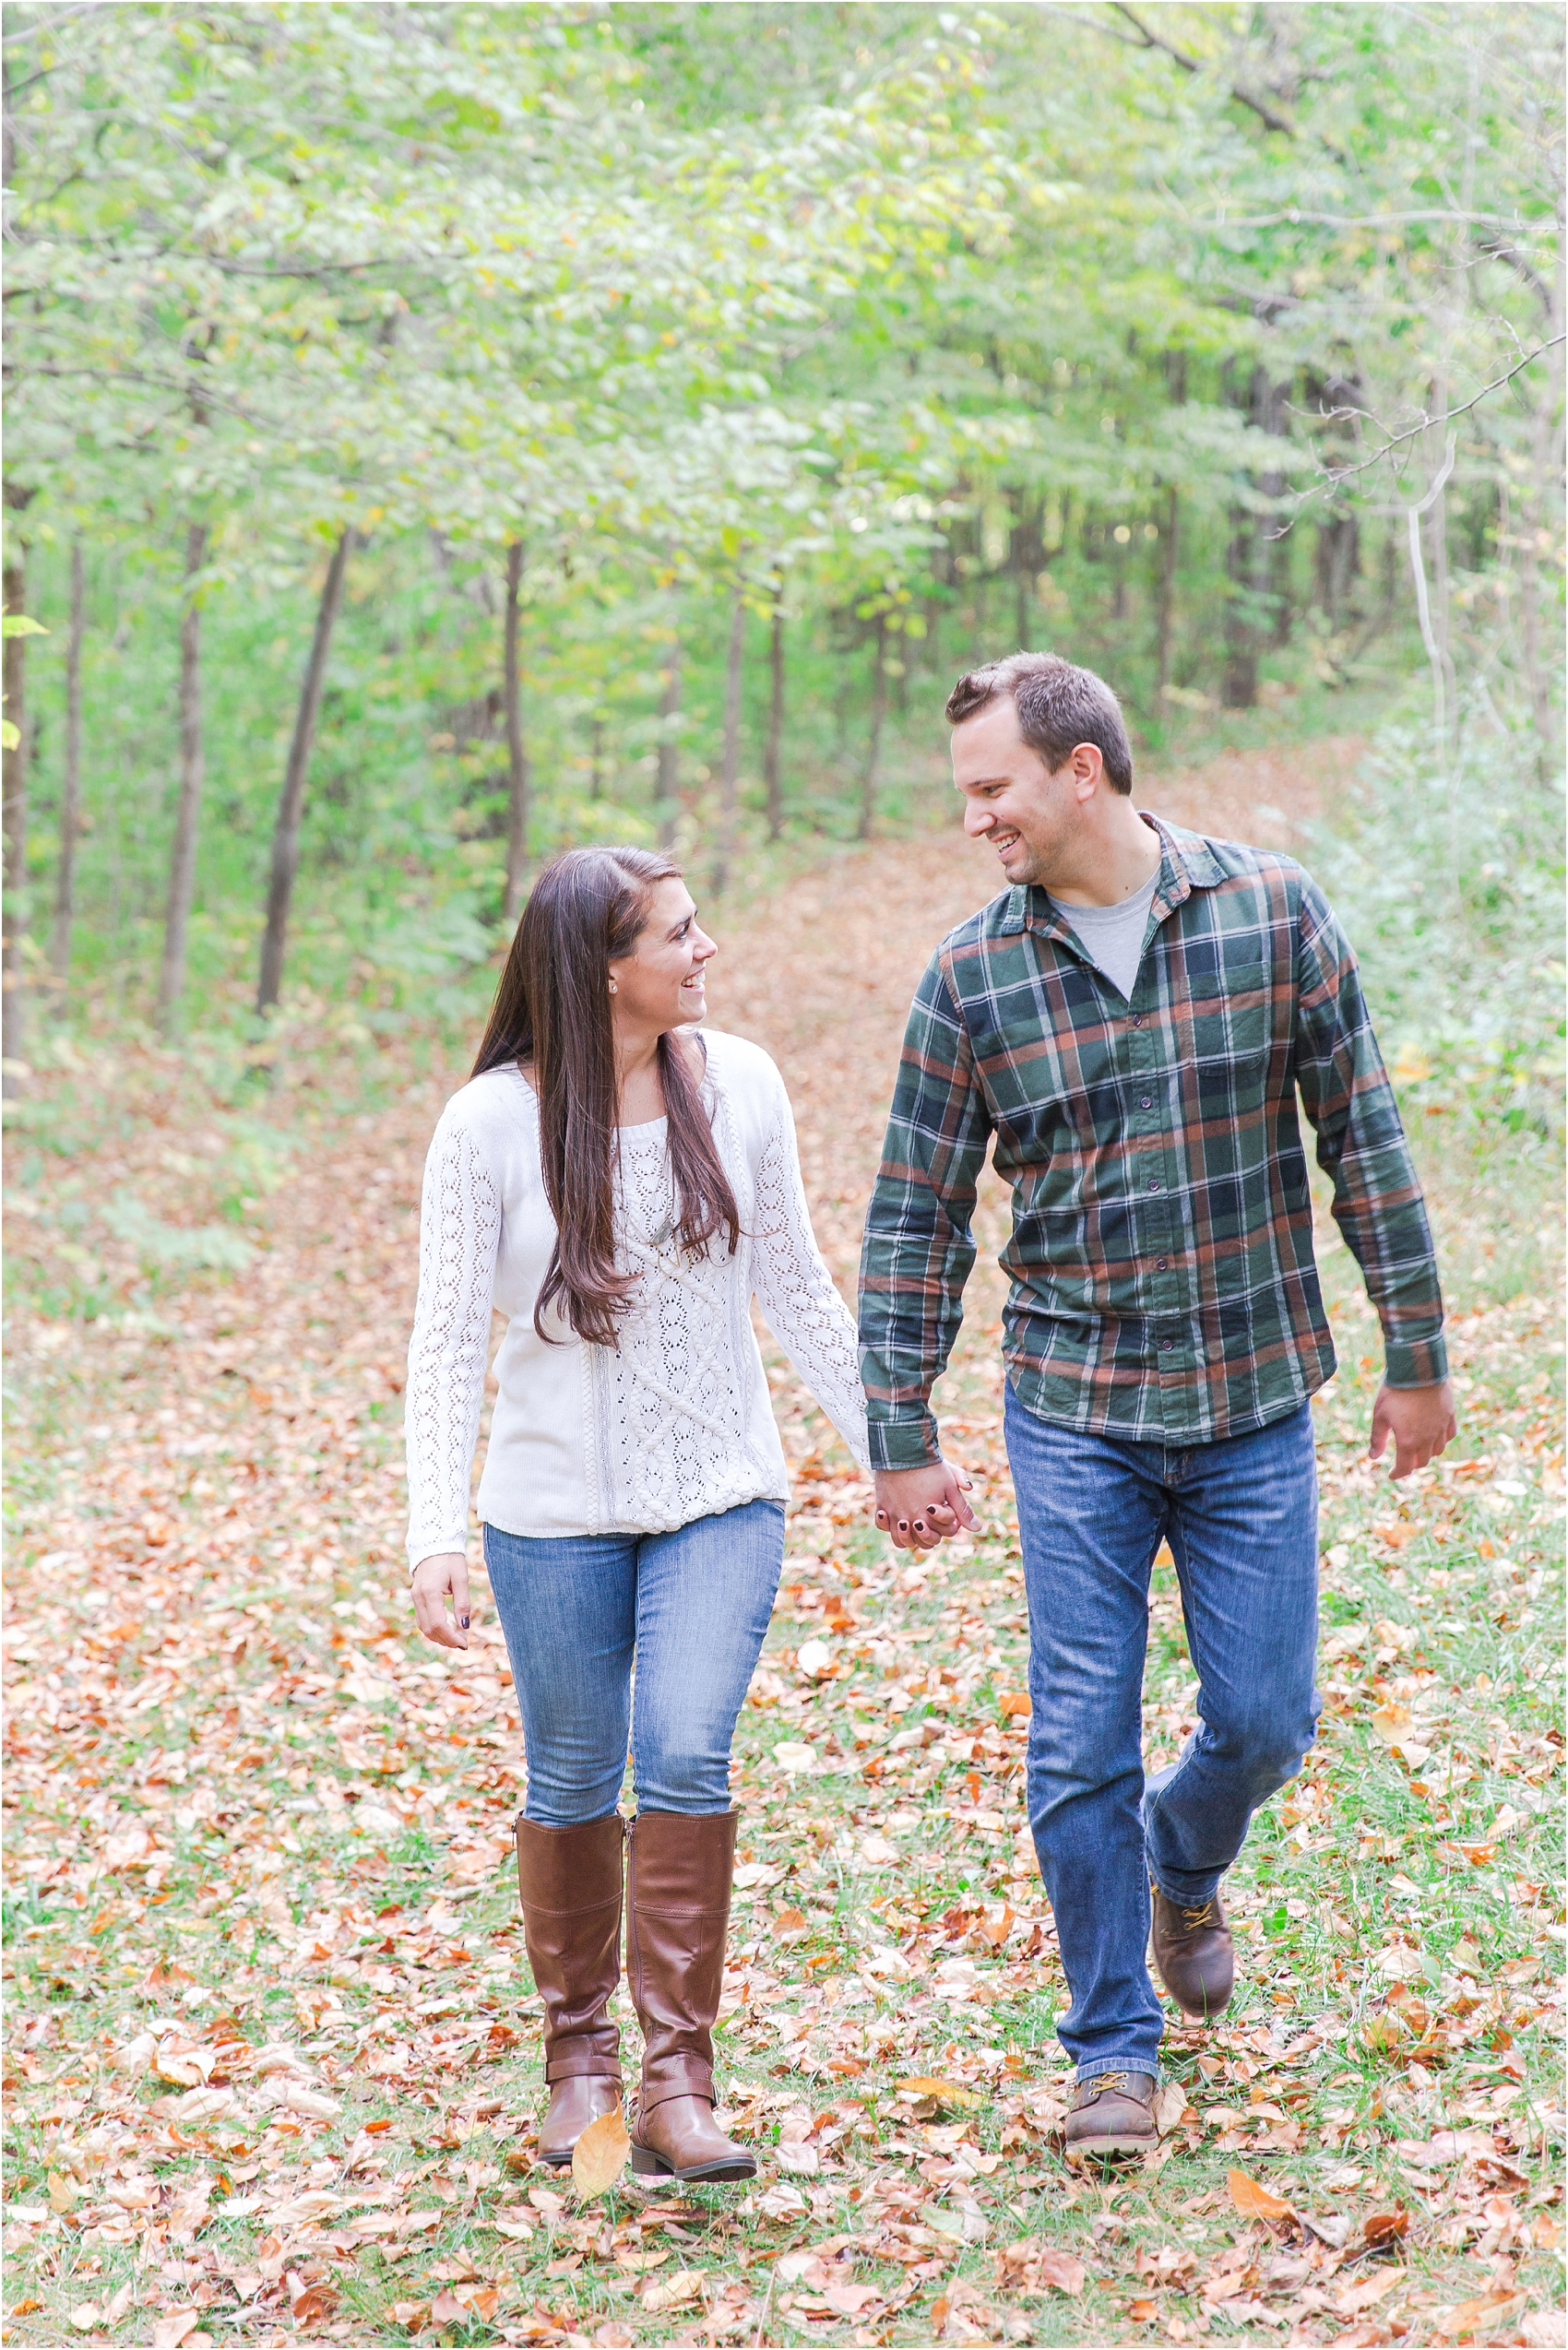 relaxed-autumn-engagement-photos-at-hudson-mills-metropark-in-dexter-mi-by-courtney-carolyn-photography_0008.jpg